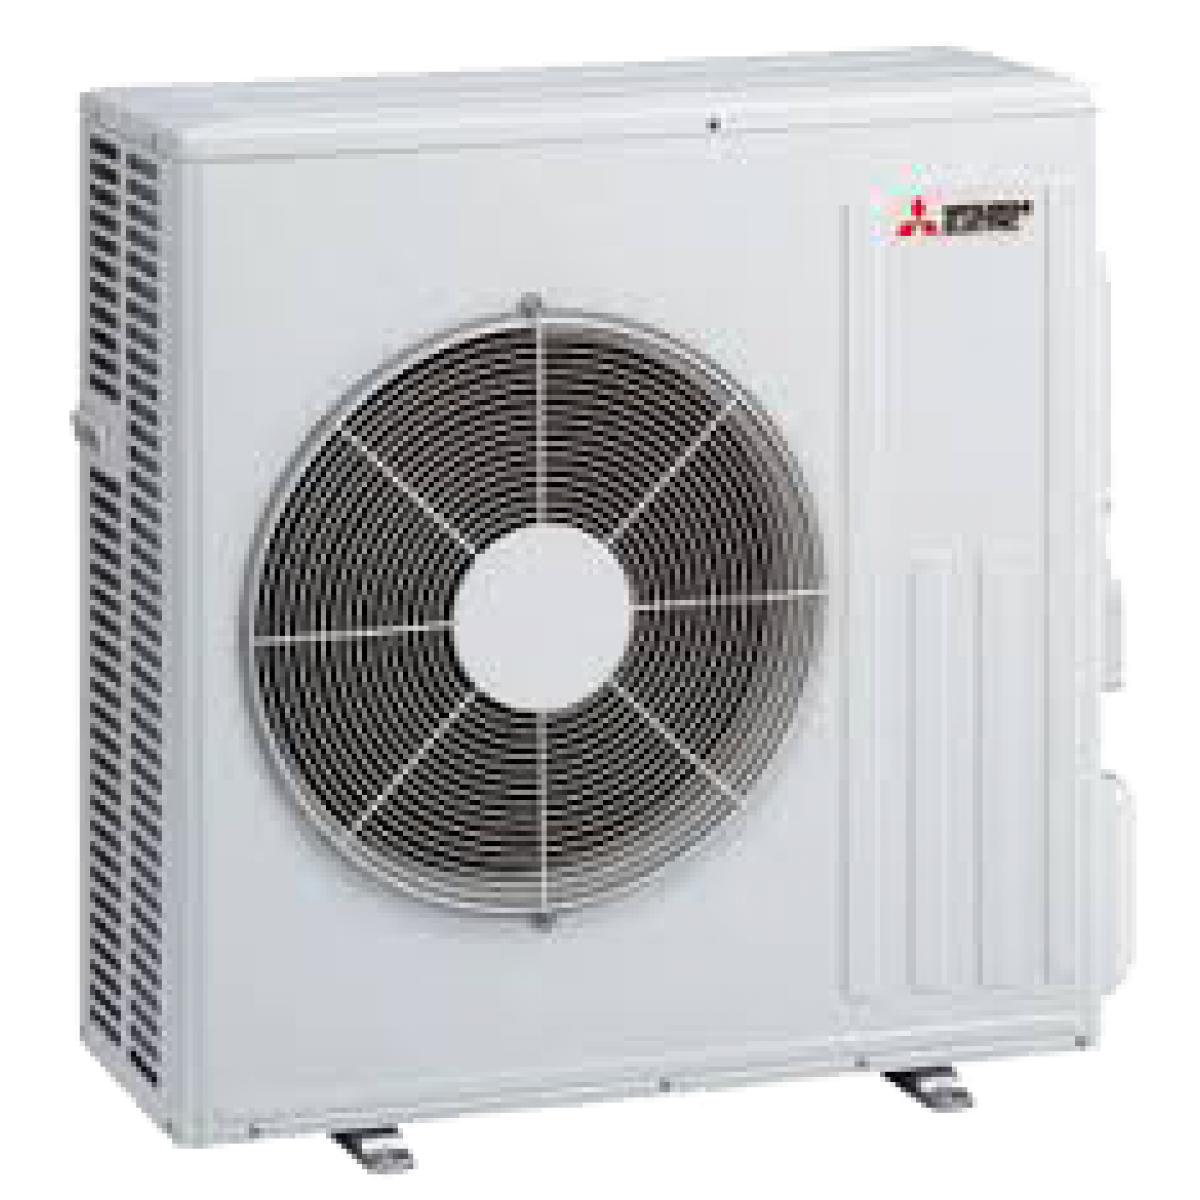 #7A5152 18K BTU Mitsubishi MUZGL Heat Pump Outdoor Unit In Ductless AC Brand New 2491 Ductless Ac Heat Pump images with 1200x1200 px on helpvideos.info - Air Conditioners, Air Coolers and more